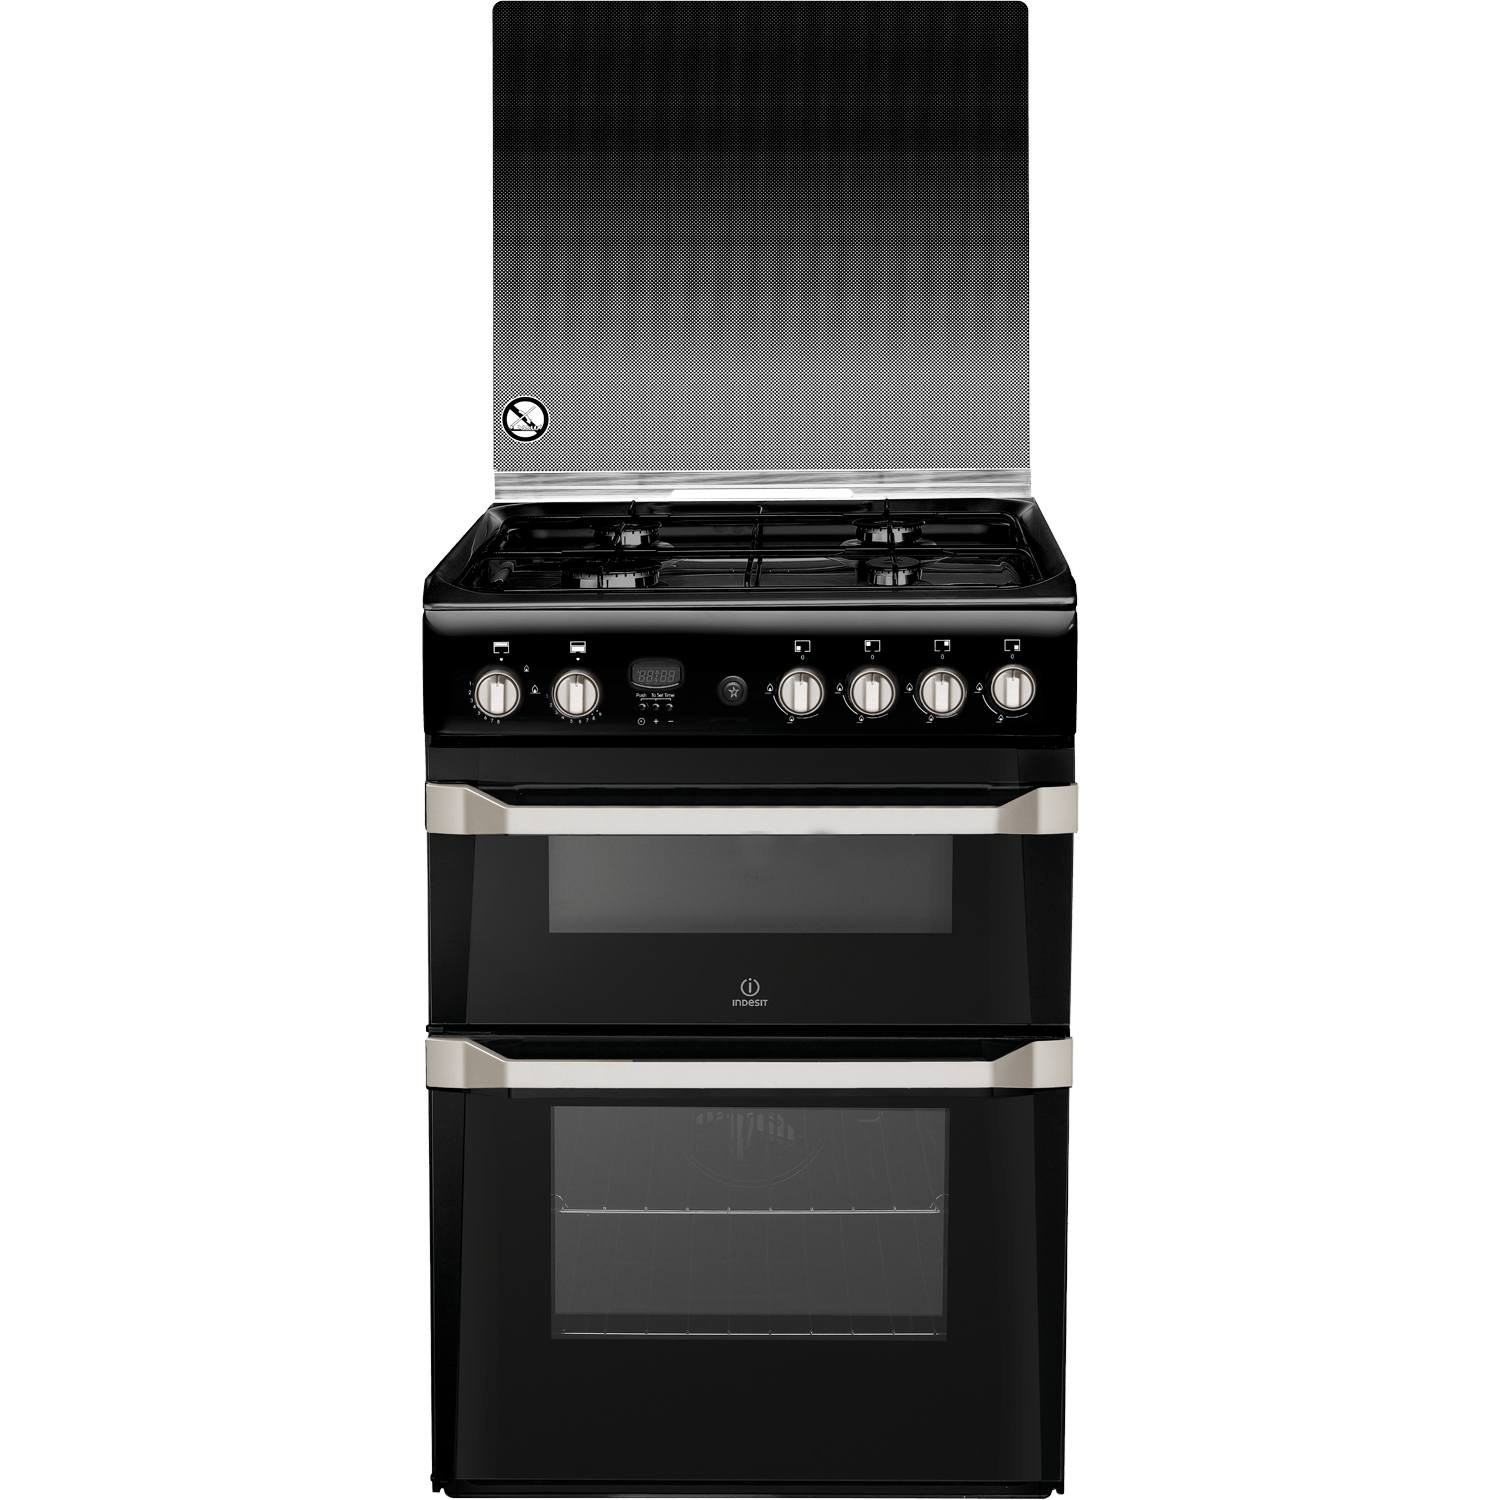 indesit id60g2k 60cm freestanding double oven gas cooker. Black Bedroom Furniture Sets. Home Design Ideas